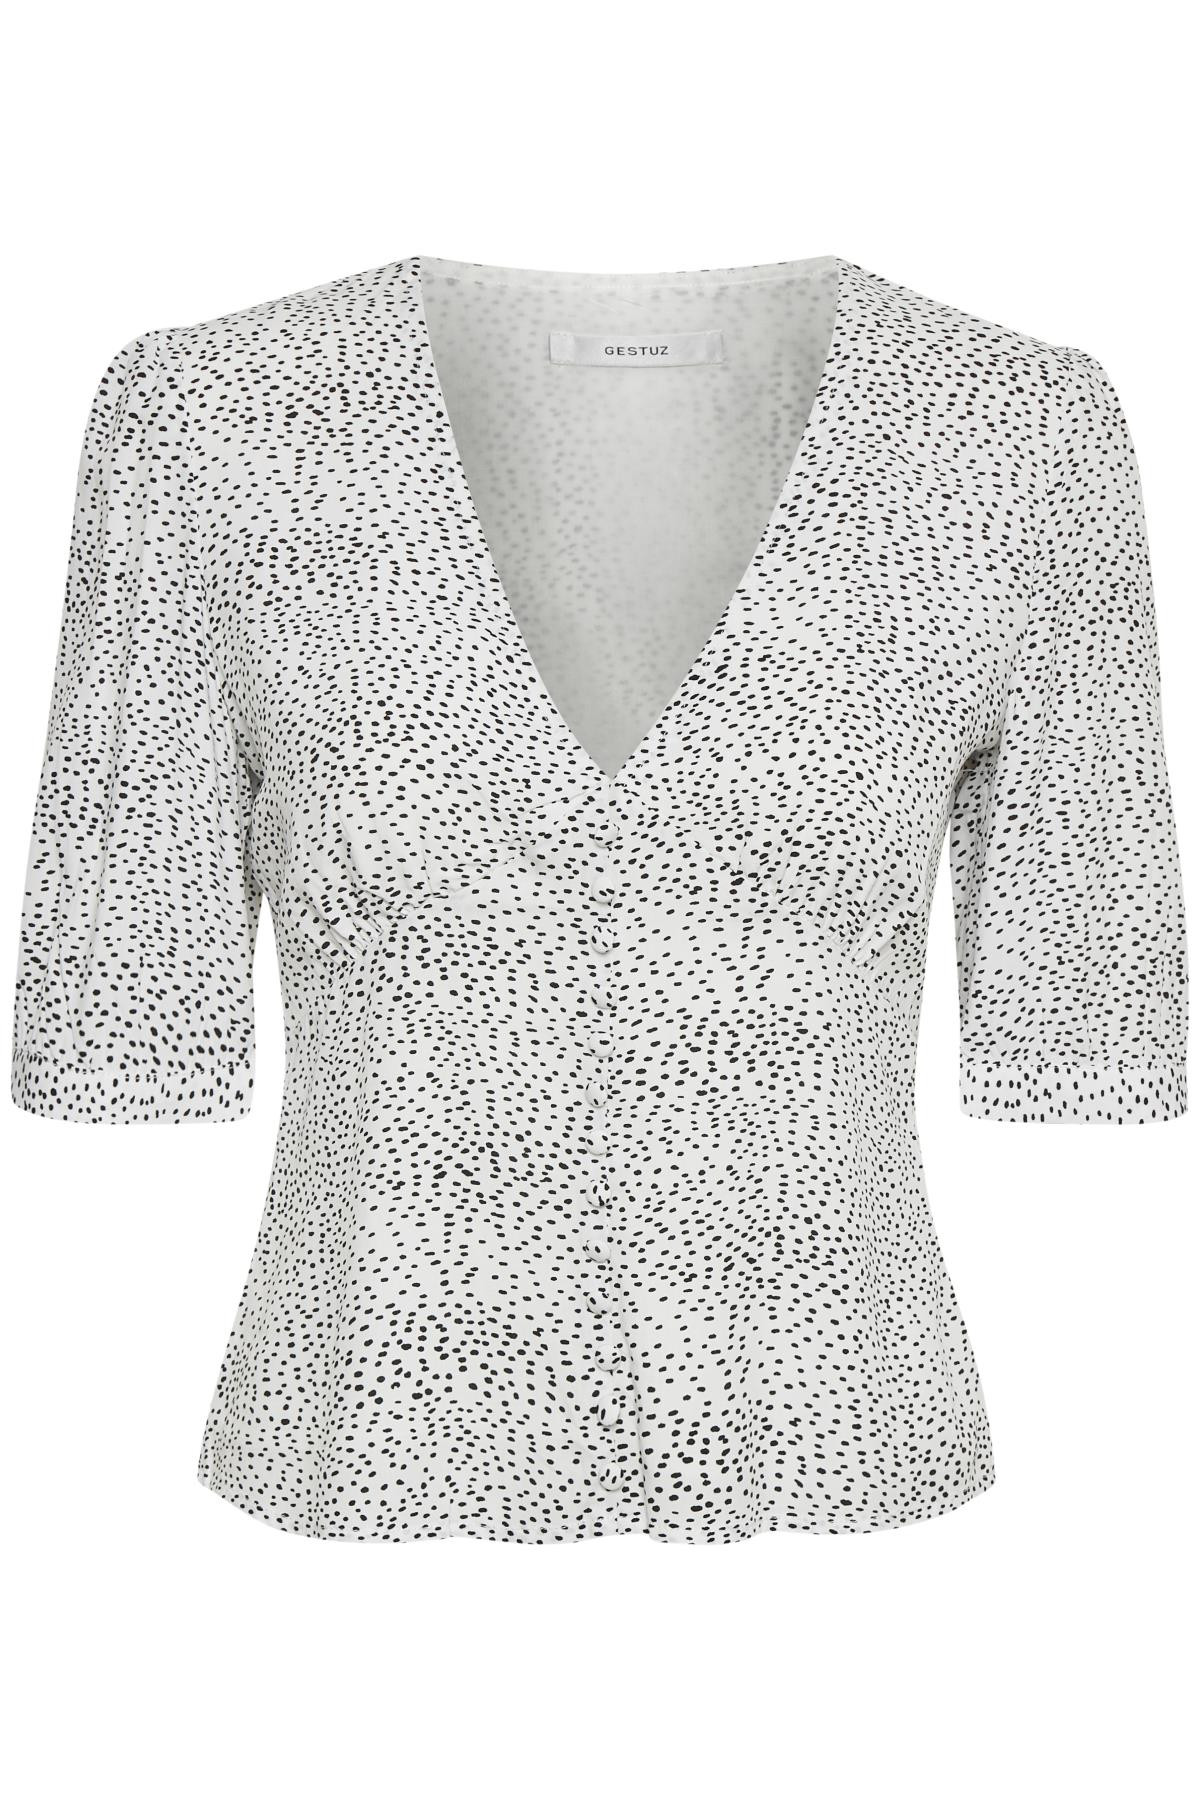 Image of   GESTUZ CATHRINGZ BLUSE (White With Black Dot 90269, 38)